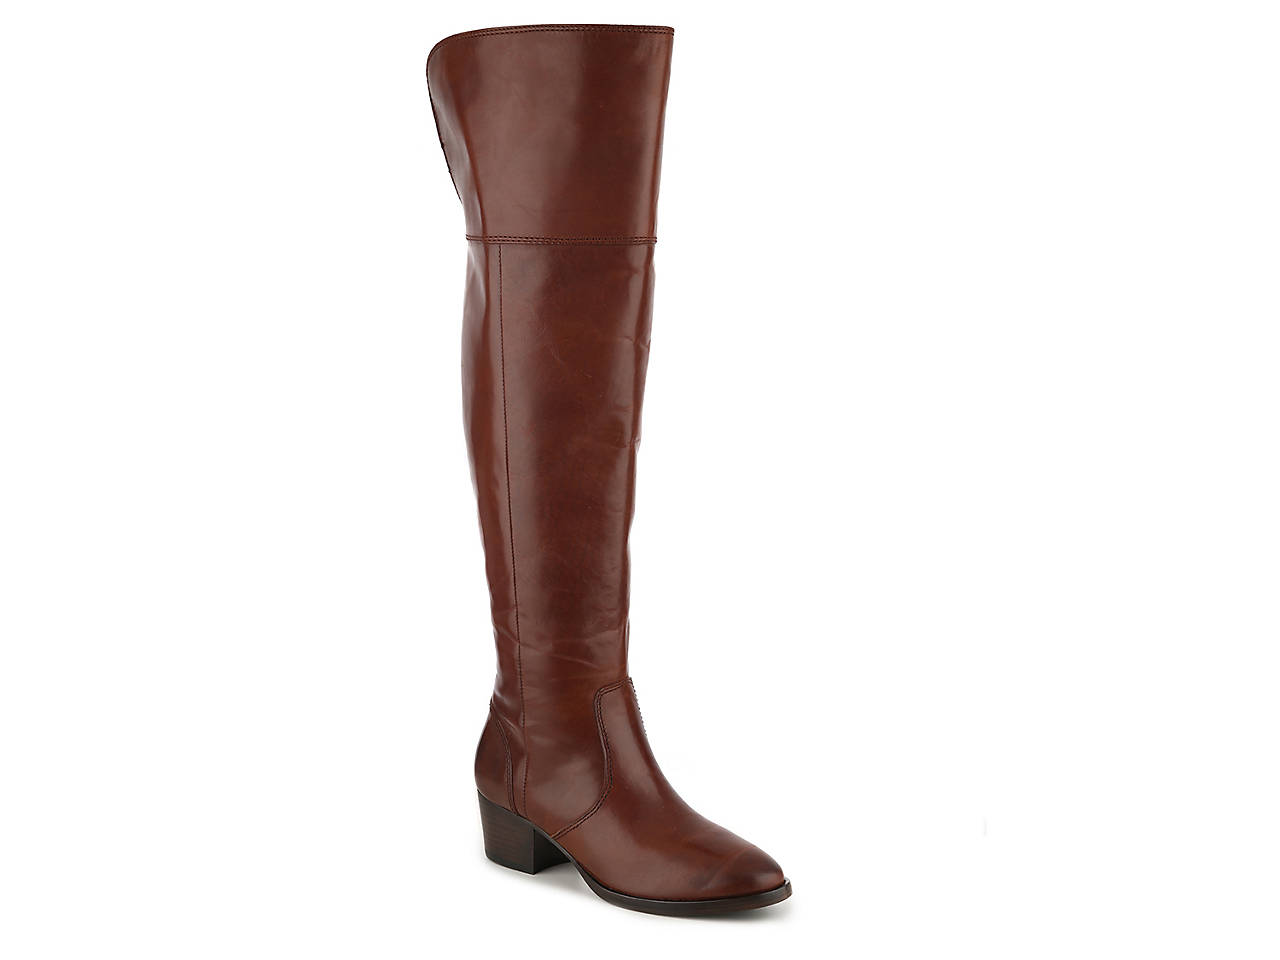 38a745e5564 Frye Clara Over The Knee Boot Women s Shoes